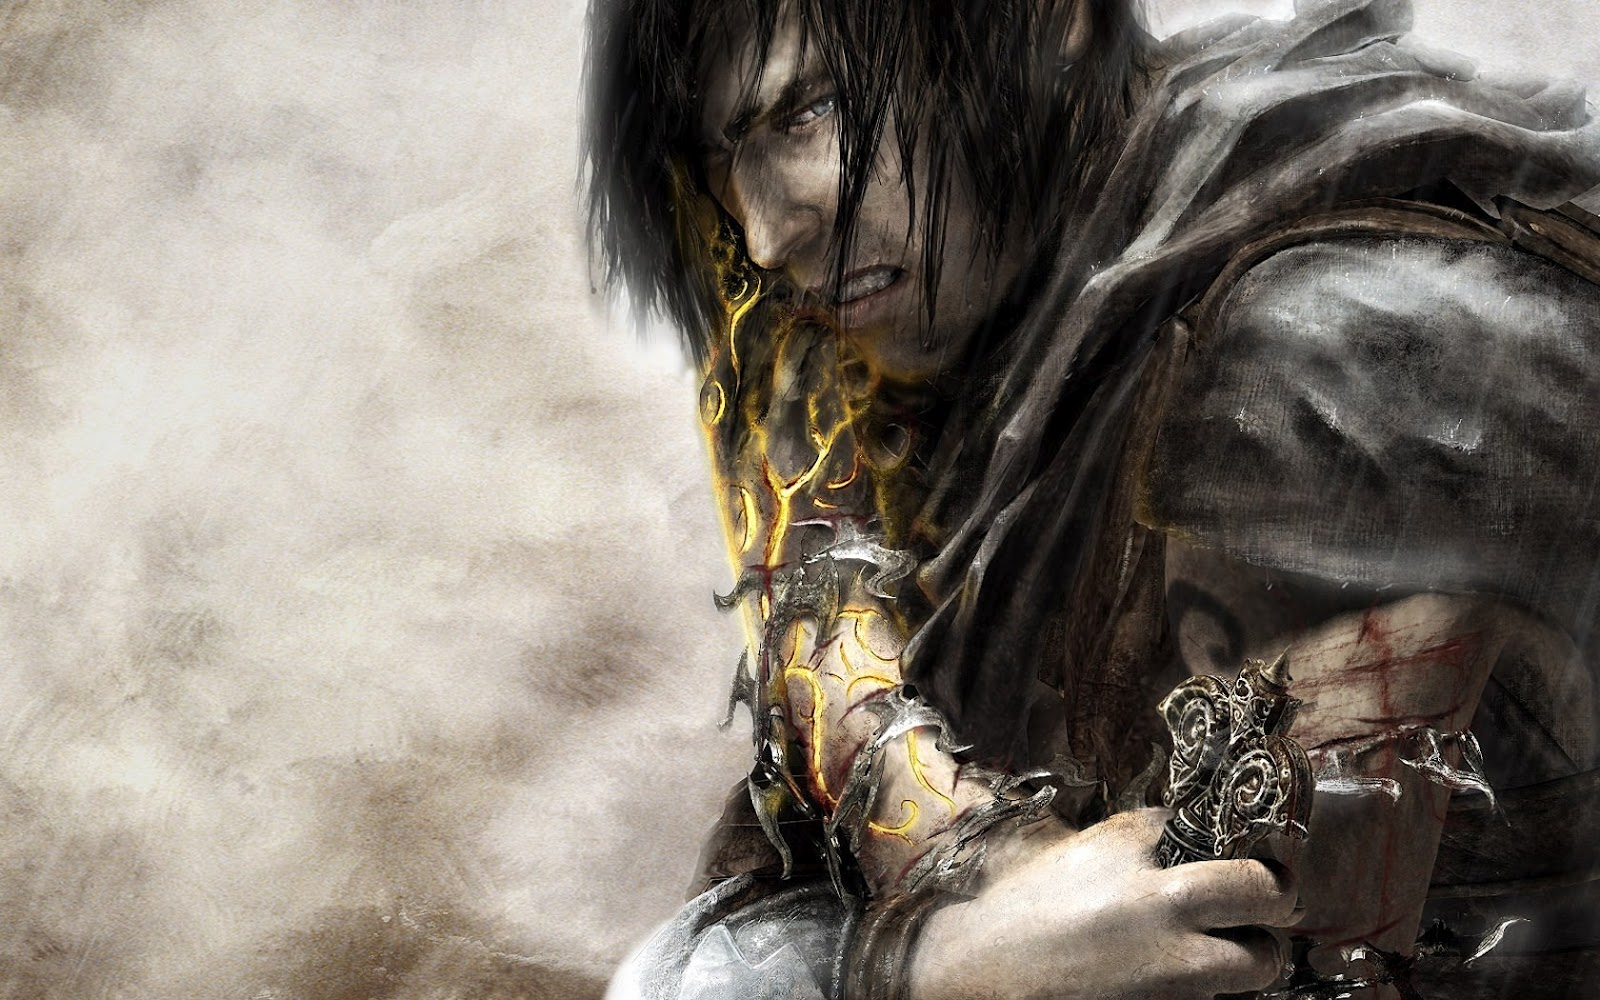 Cool wallpapers for you prince of persia hd wallpapers - Prince wallpaper ...